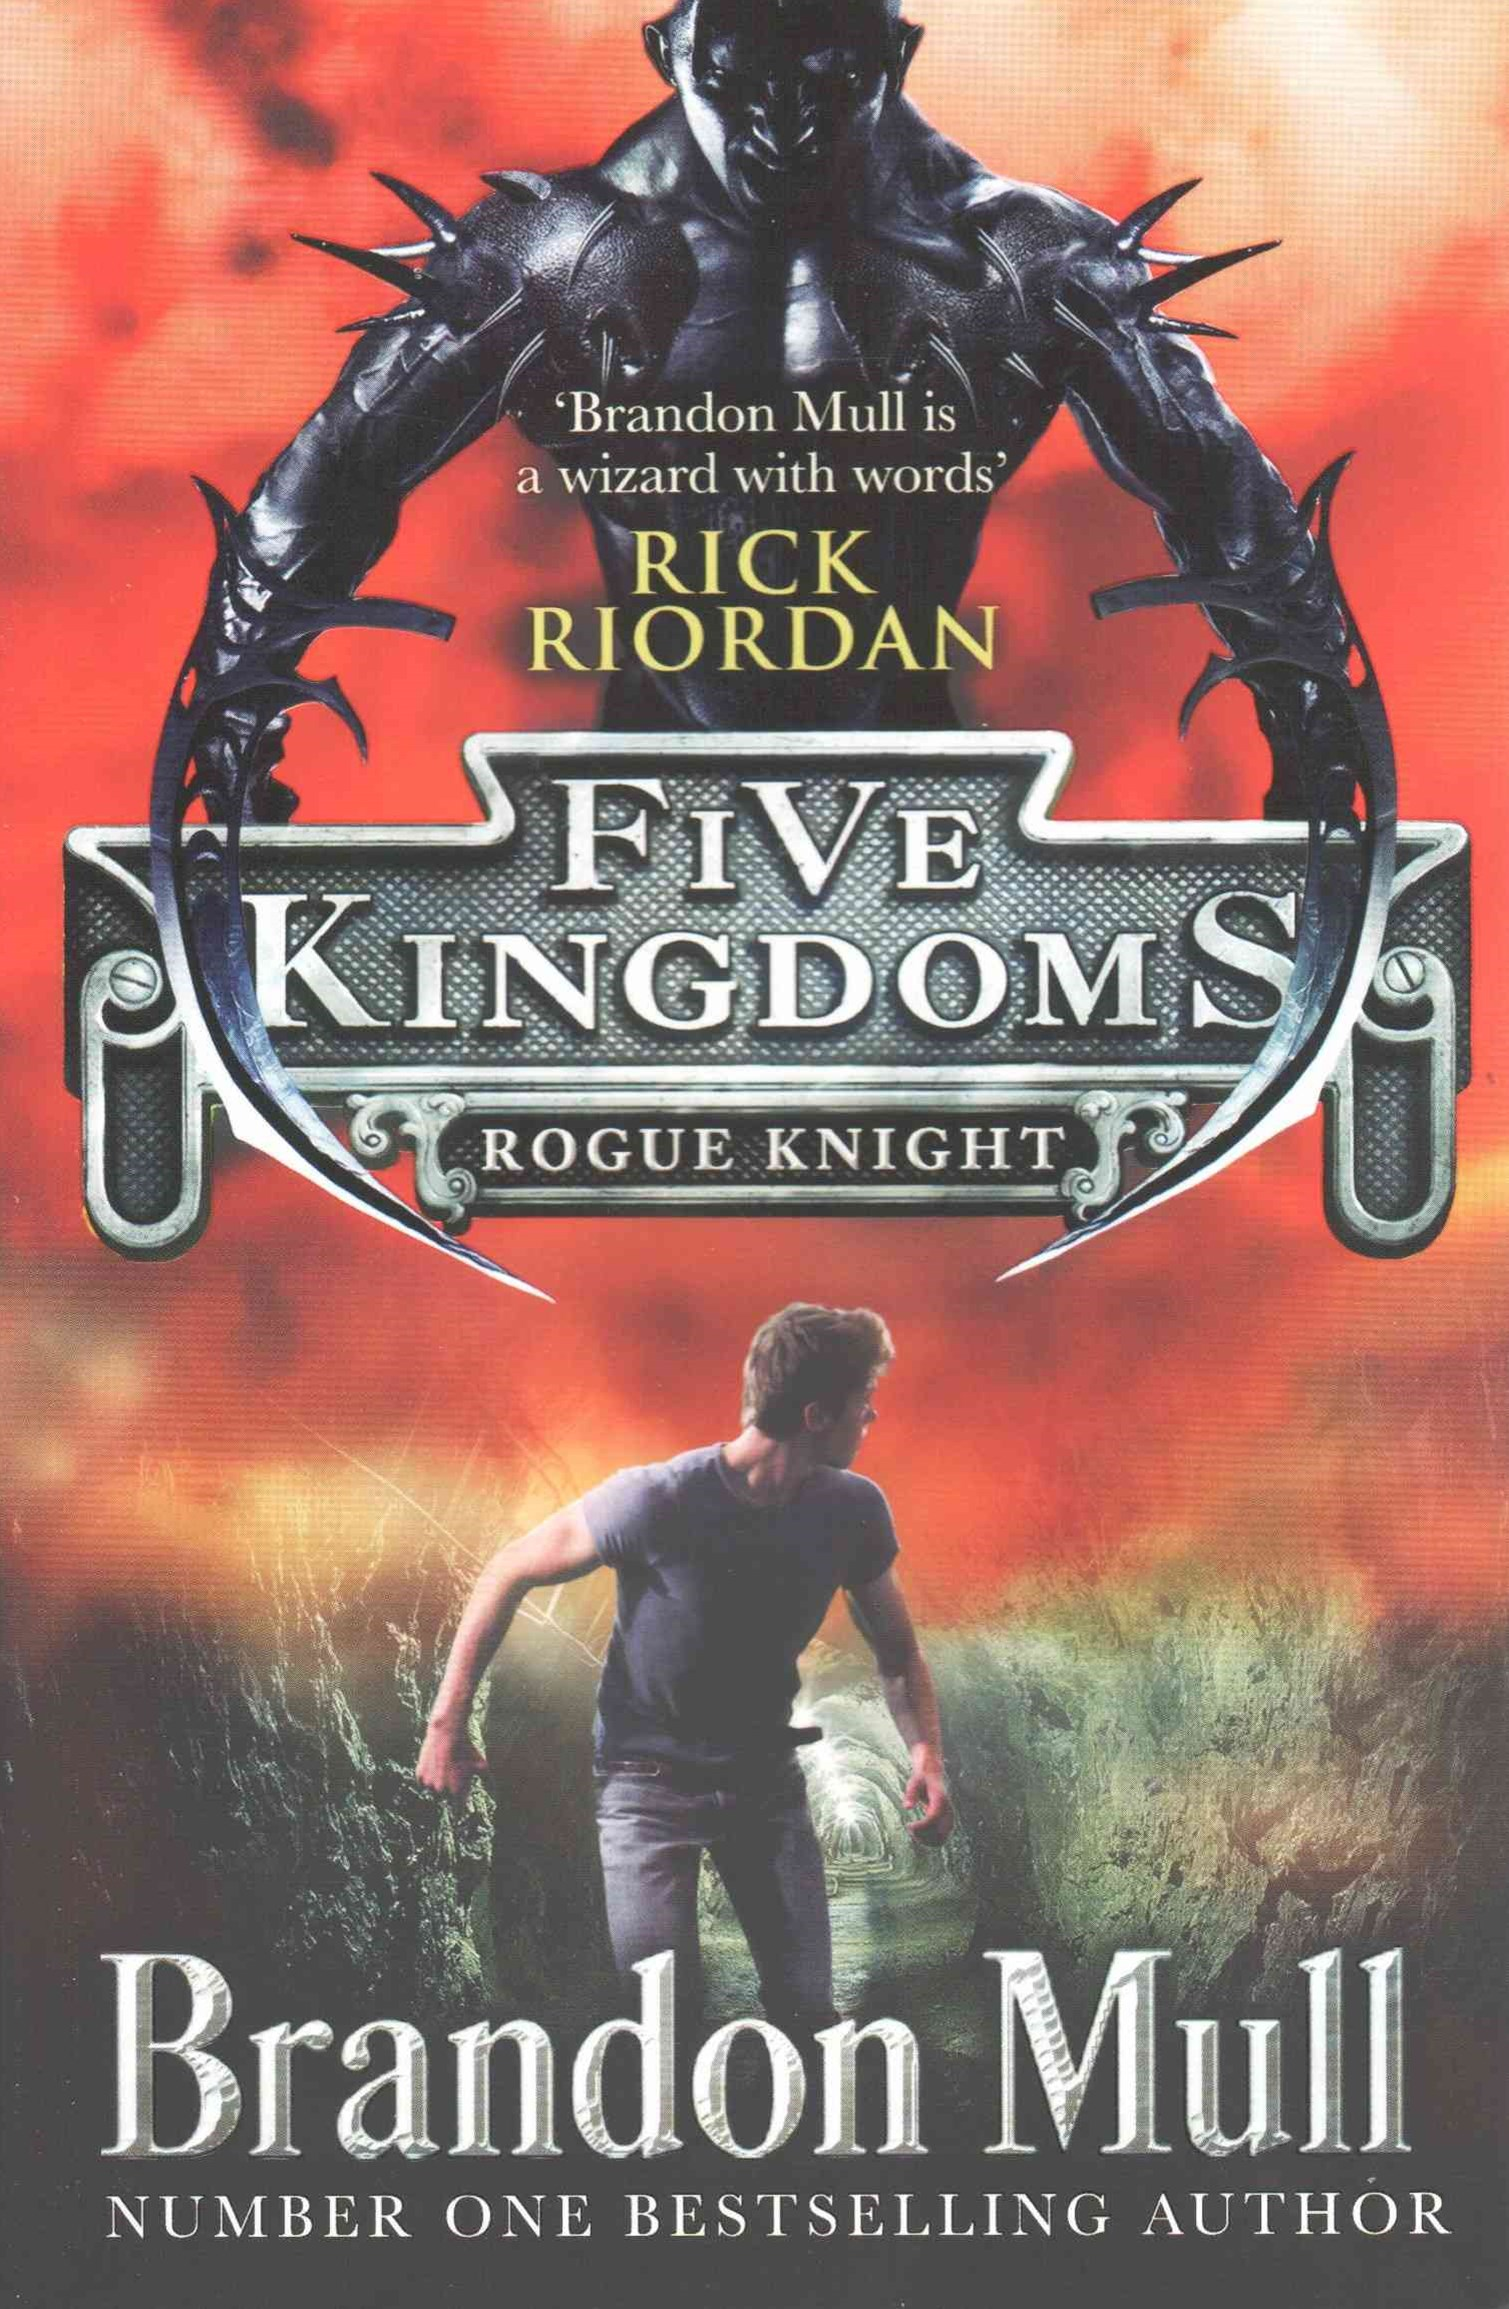 Five Kingdoms #2: Rogue Knight